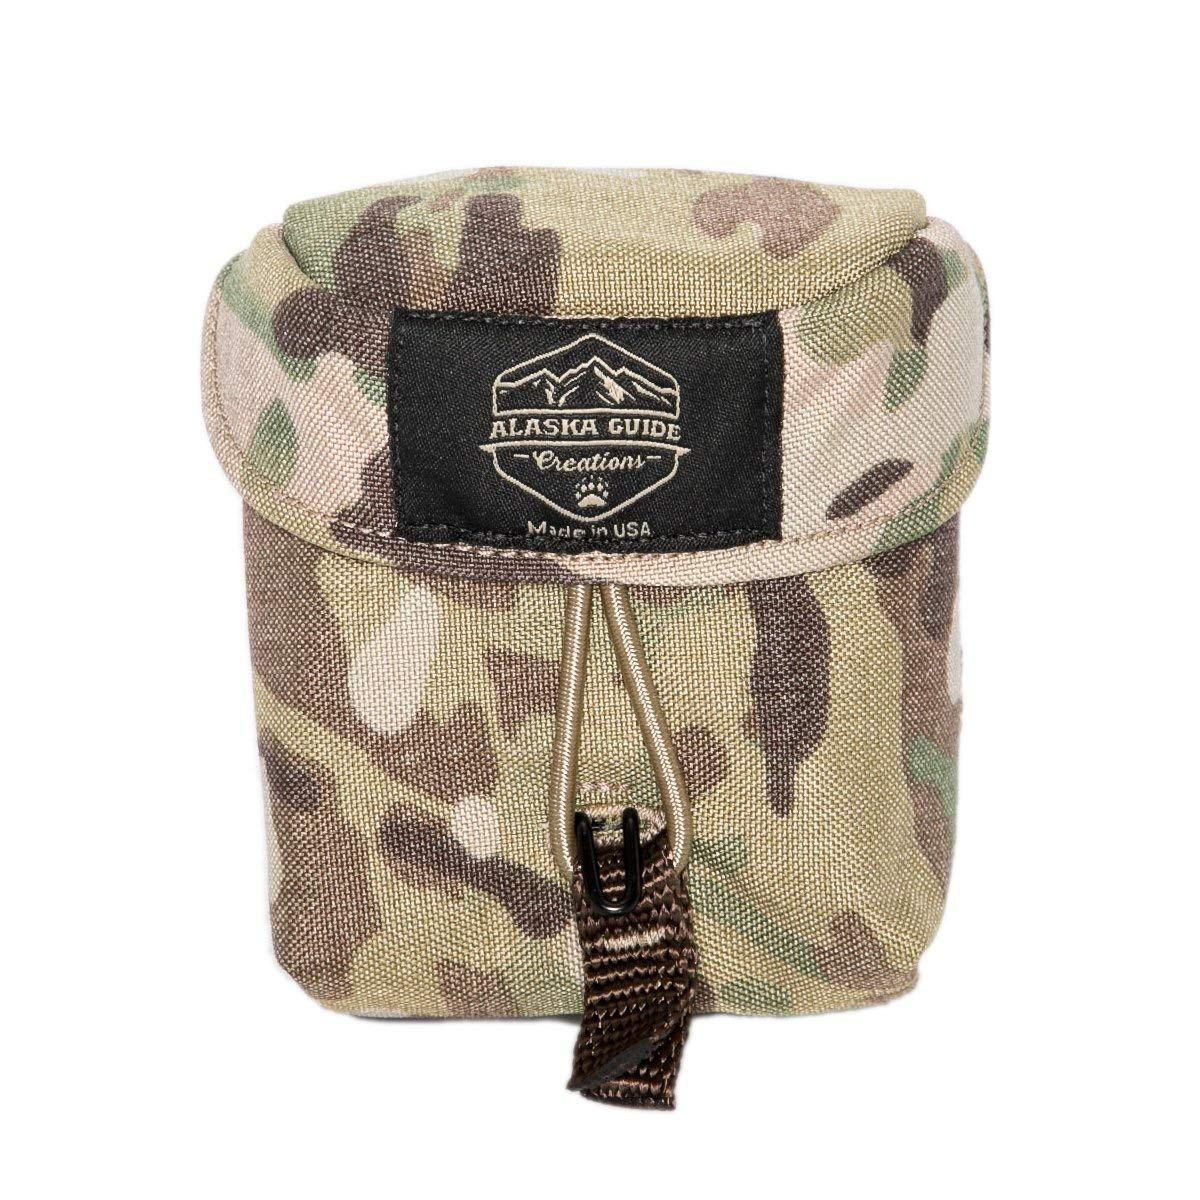 Alaska Guide Creations Rangefinder Pouch 10 Color Options Range Finder Pouch by Alaska Guide Creations